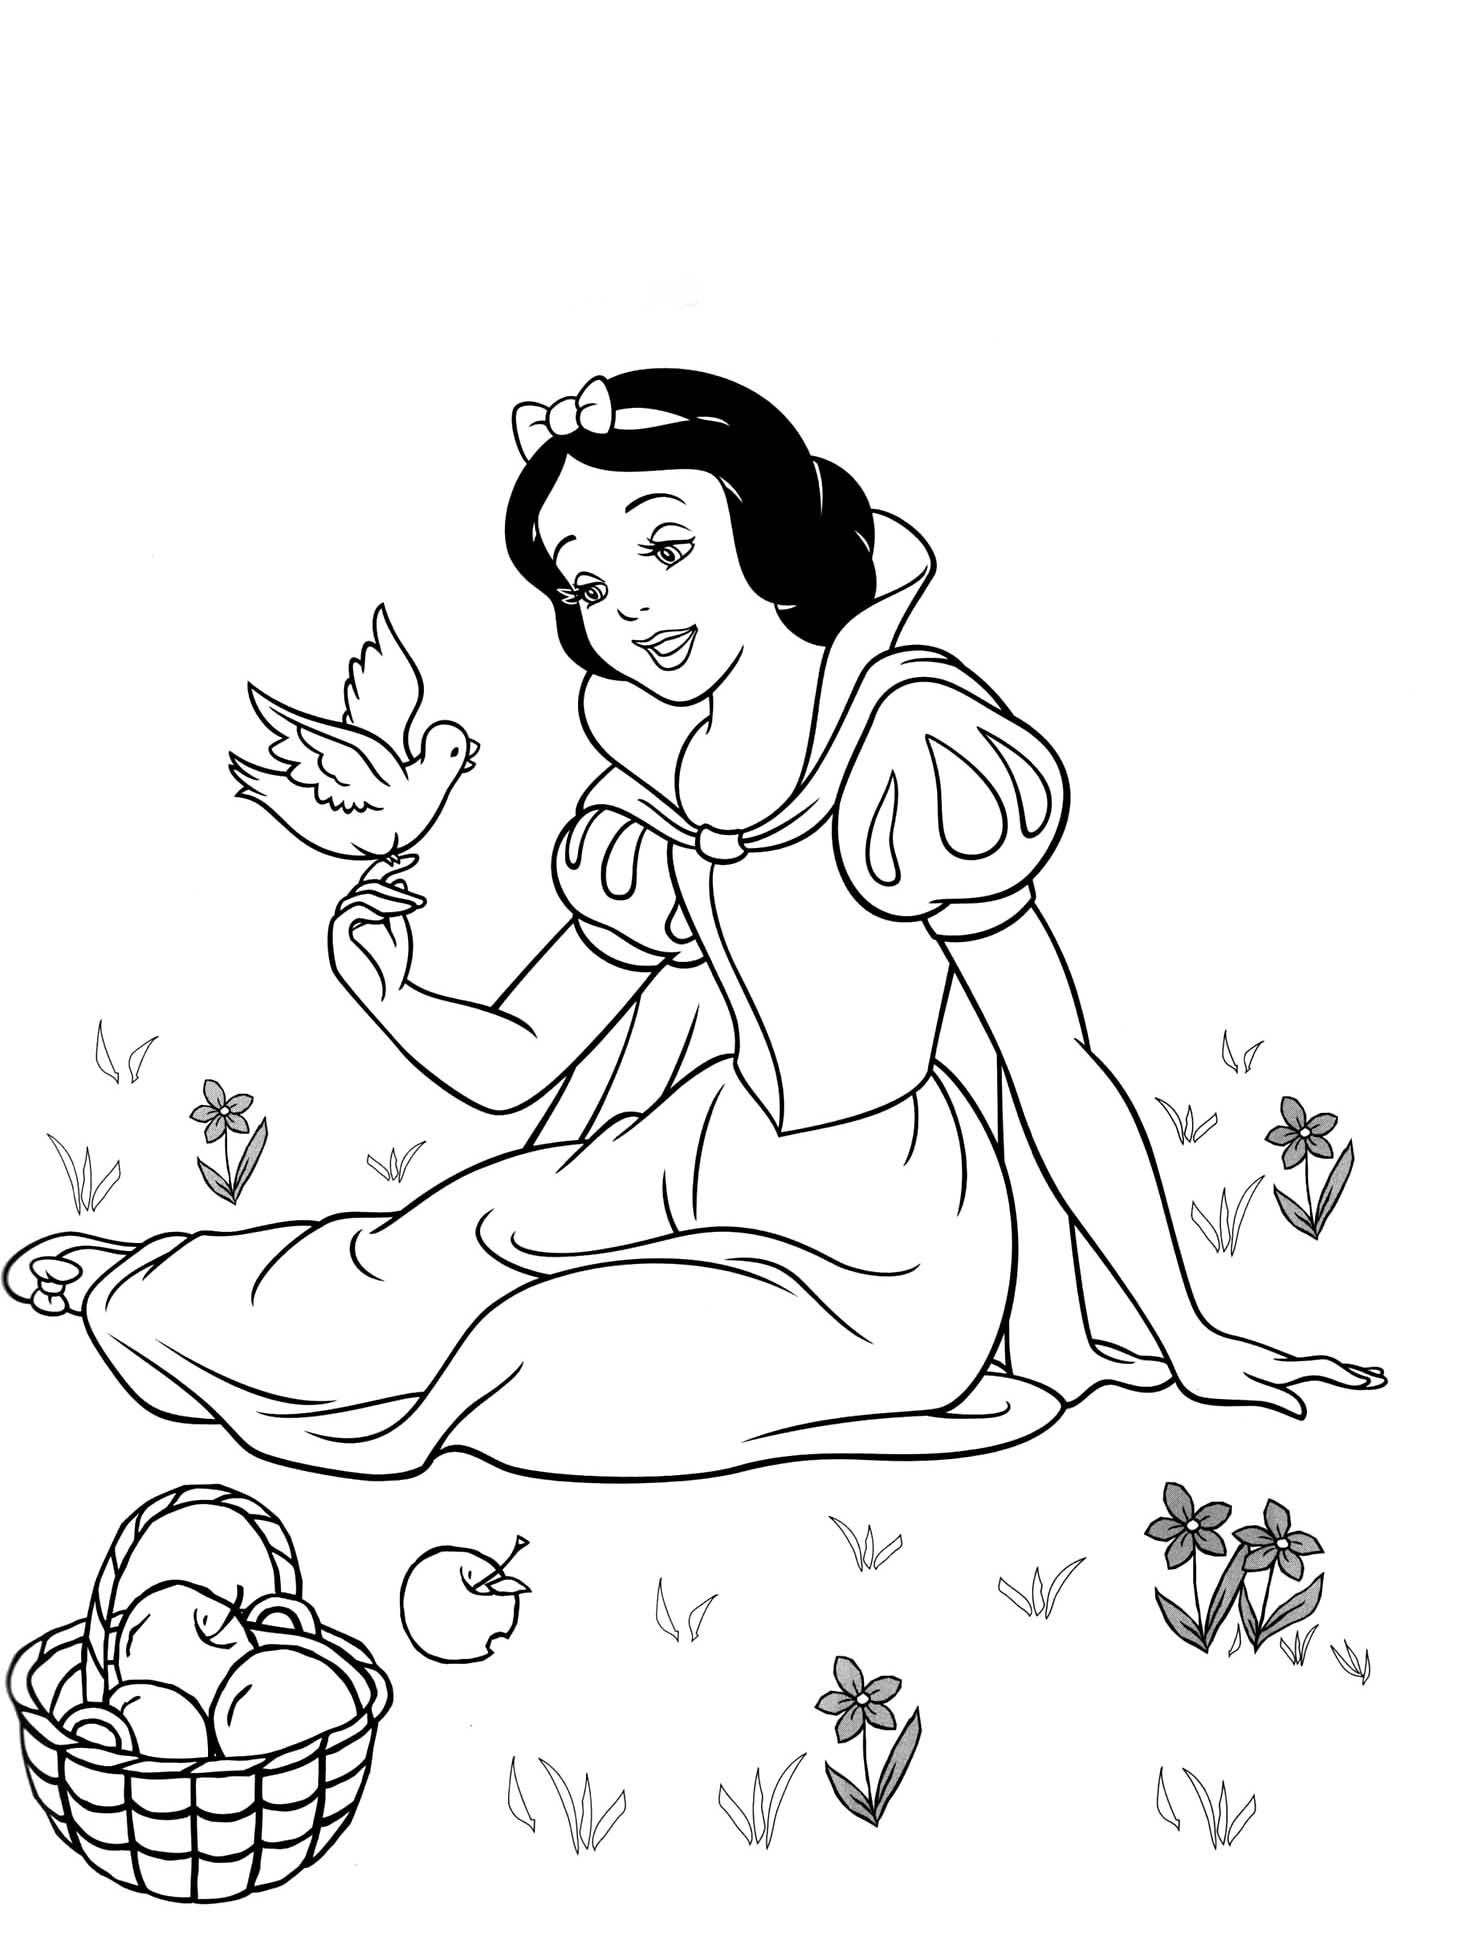 snow white for coloring snow white coloring pages disneyclipscom white for coloring snow